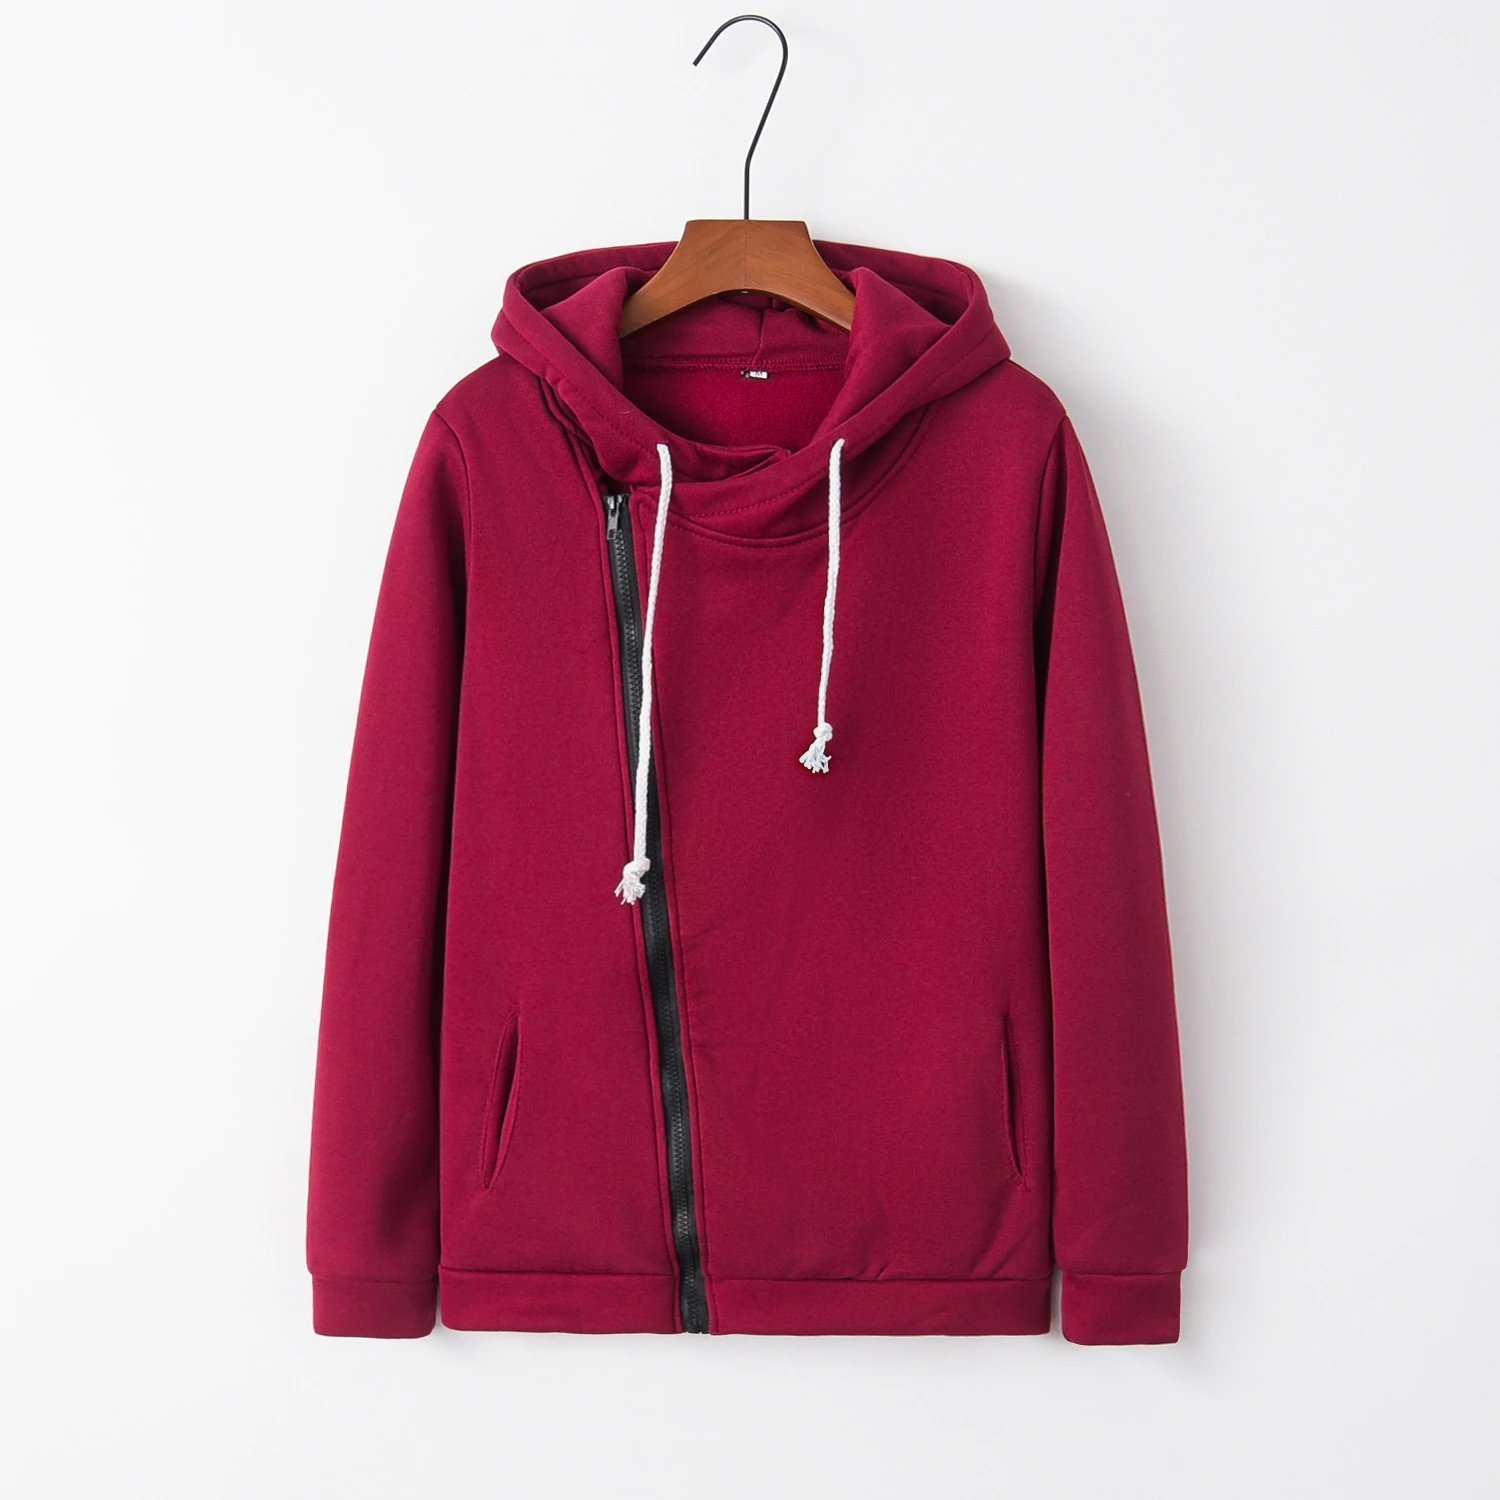 Solid Color Hooded Jacket Sleeve Women's Hoodie Zipper Fall Winter Women Sweatshirts